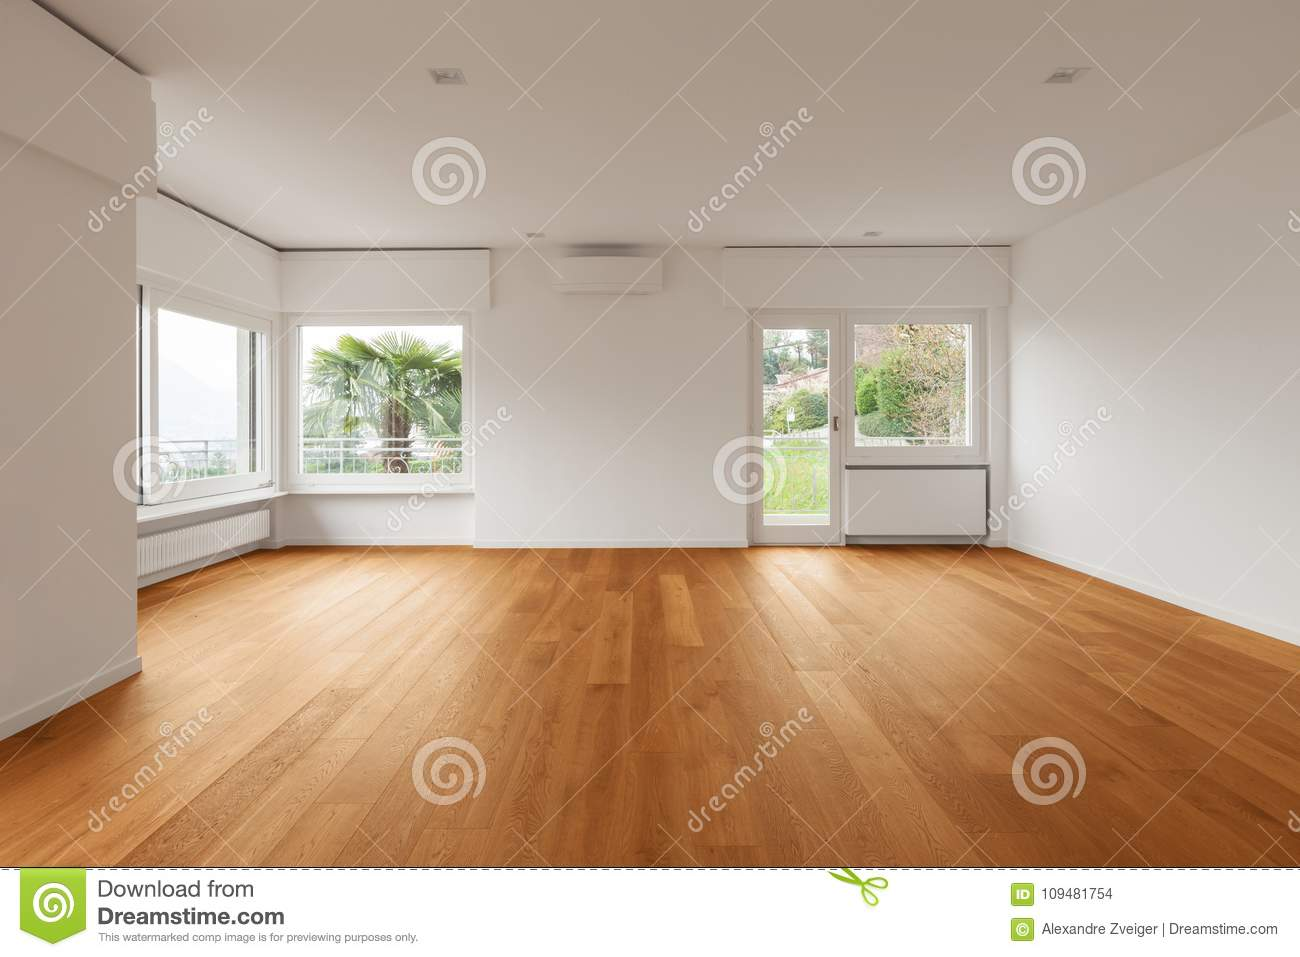 Parquet Moderne Salon Intérieur D Appartement Moderne Salon Photo Stock Image Du